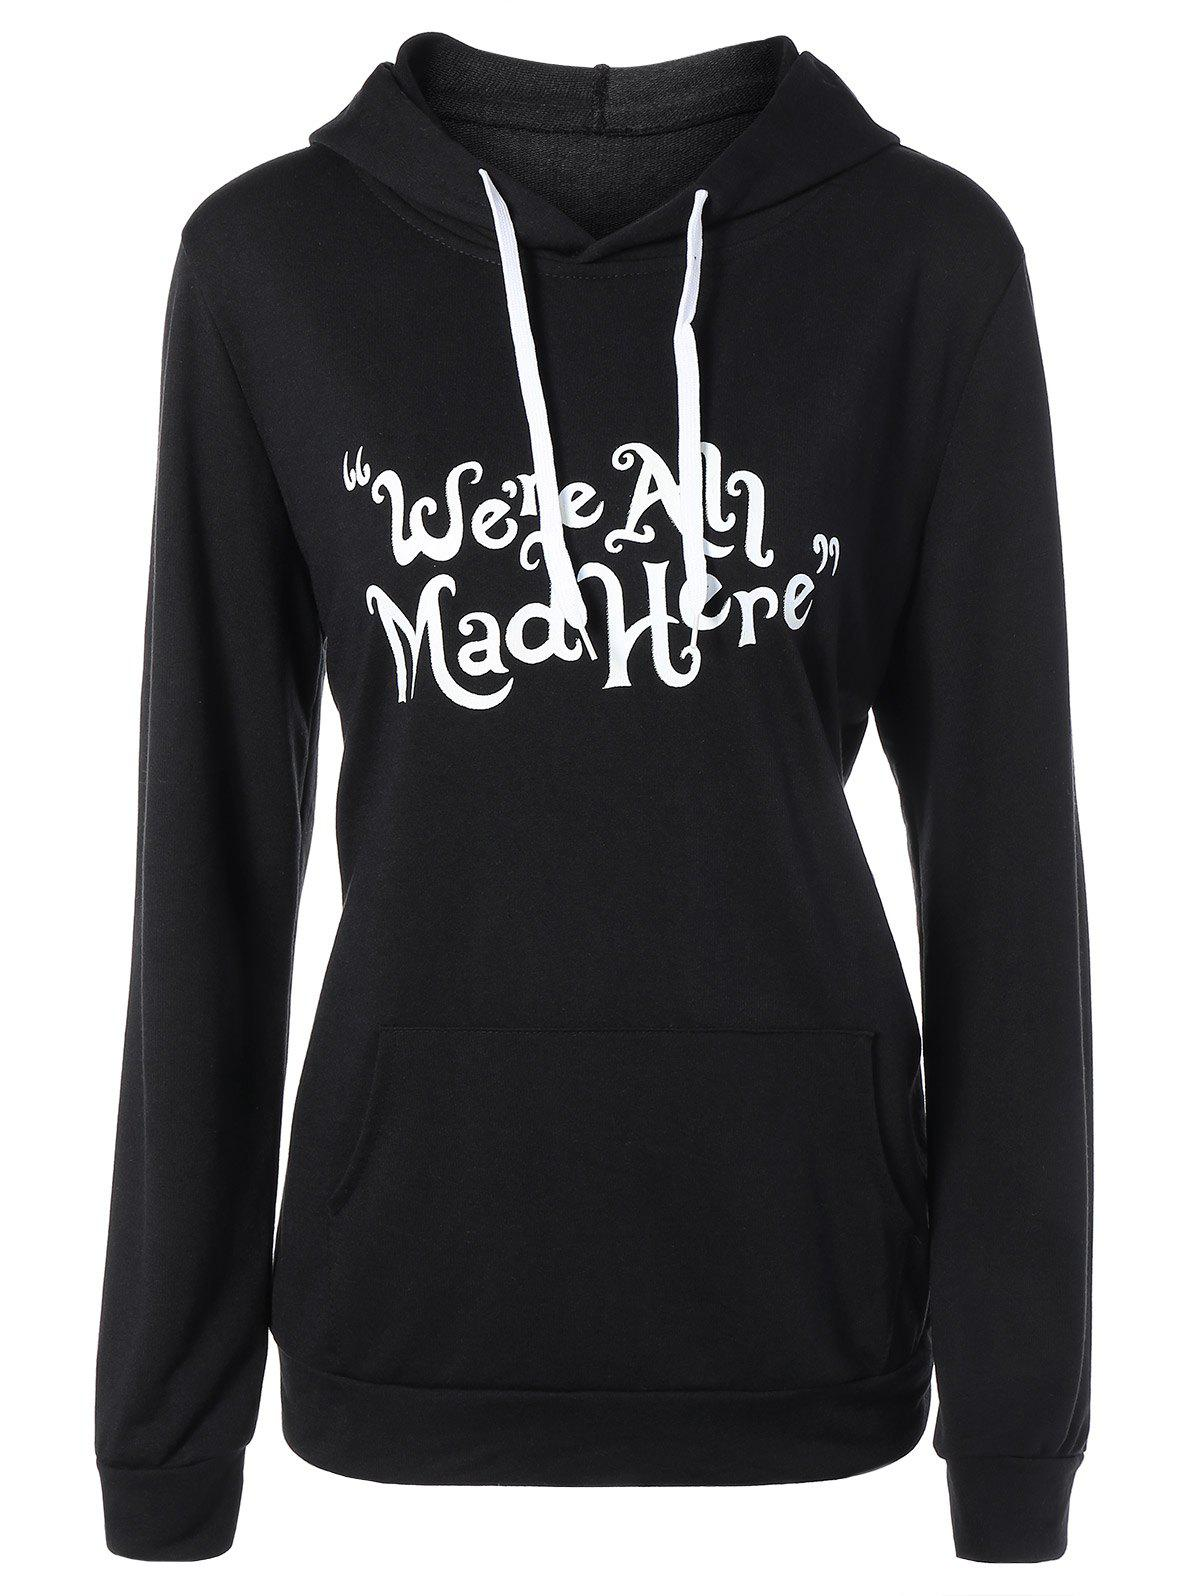 Funny Graphic Print Plus Size HoodieWOMEN<br><br>Size: 3XL; Color: BLACK; Material: Polyester; Shirt Length: Regular; Sleeve Length: Full; Collar: Hooded; Style: Casual; Season: Fall,Spring,Winter; Pattern Type: Letter; Weight: 0.370kg; Package Contents: 1 x Hoodie;